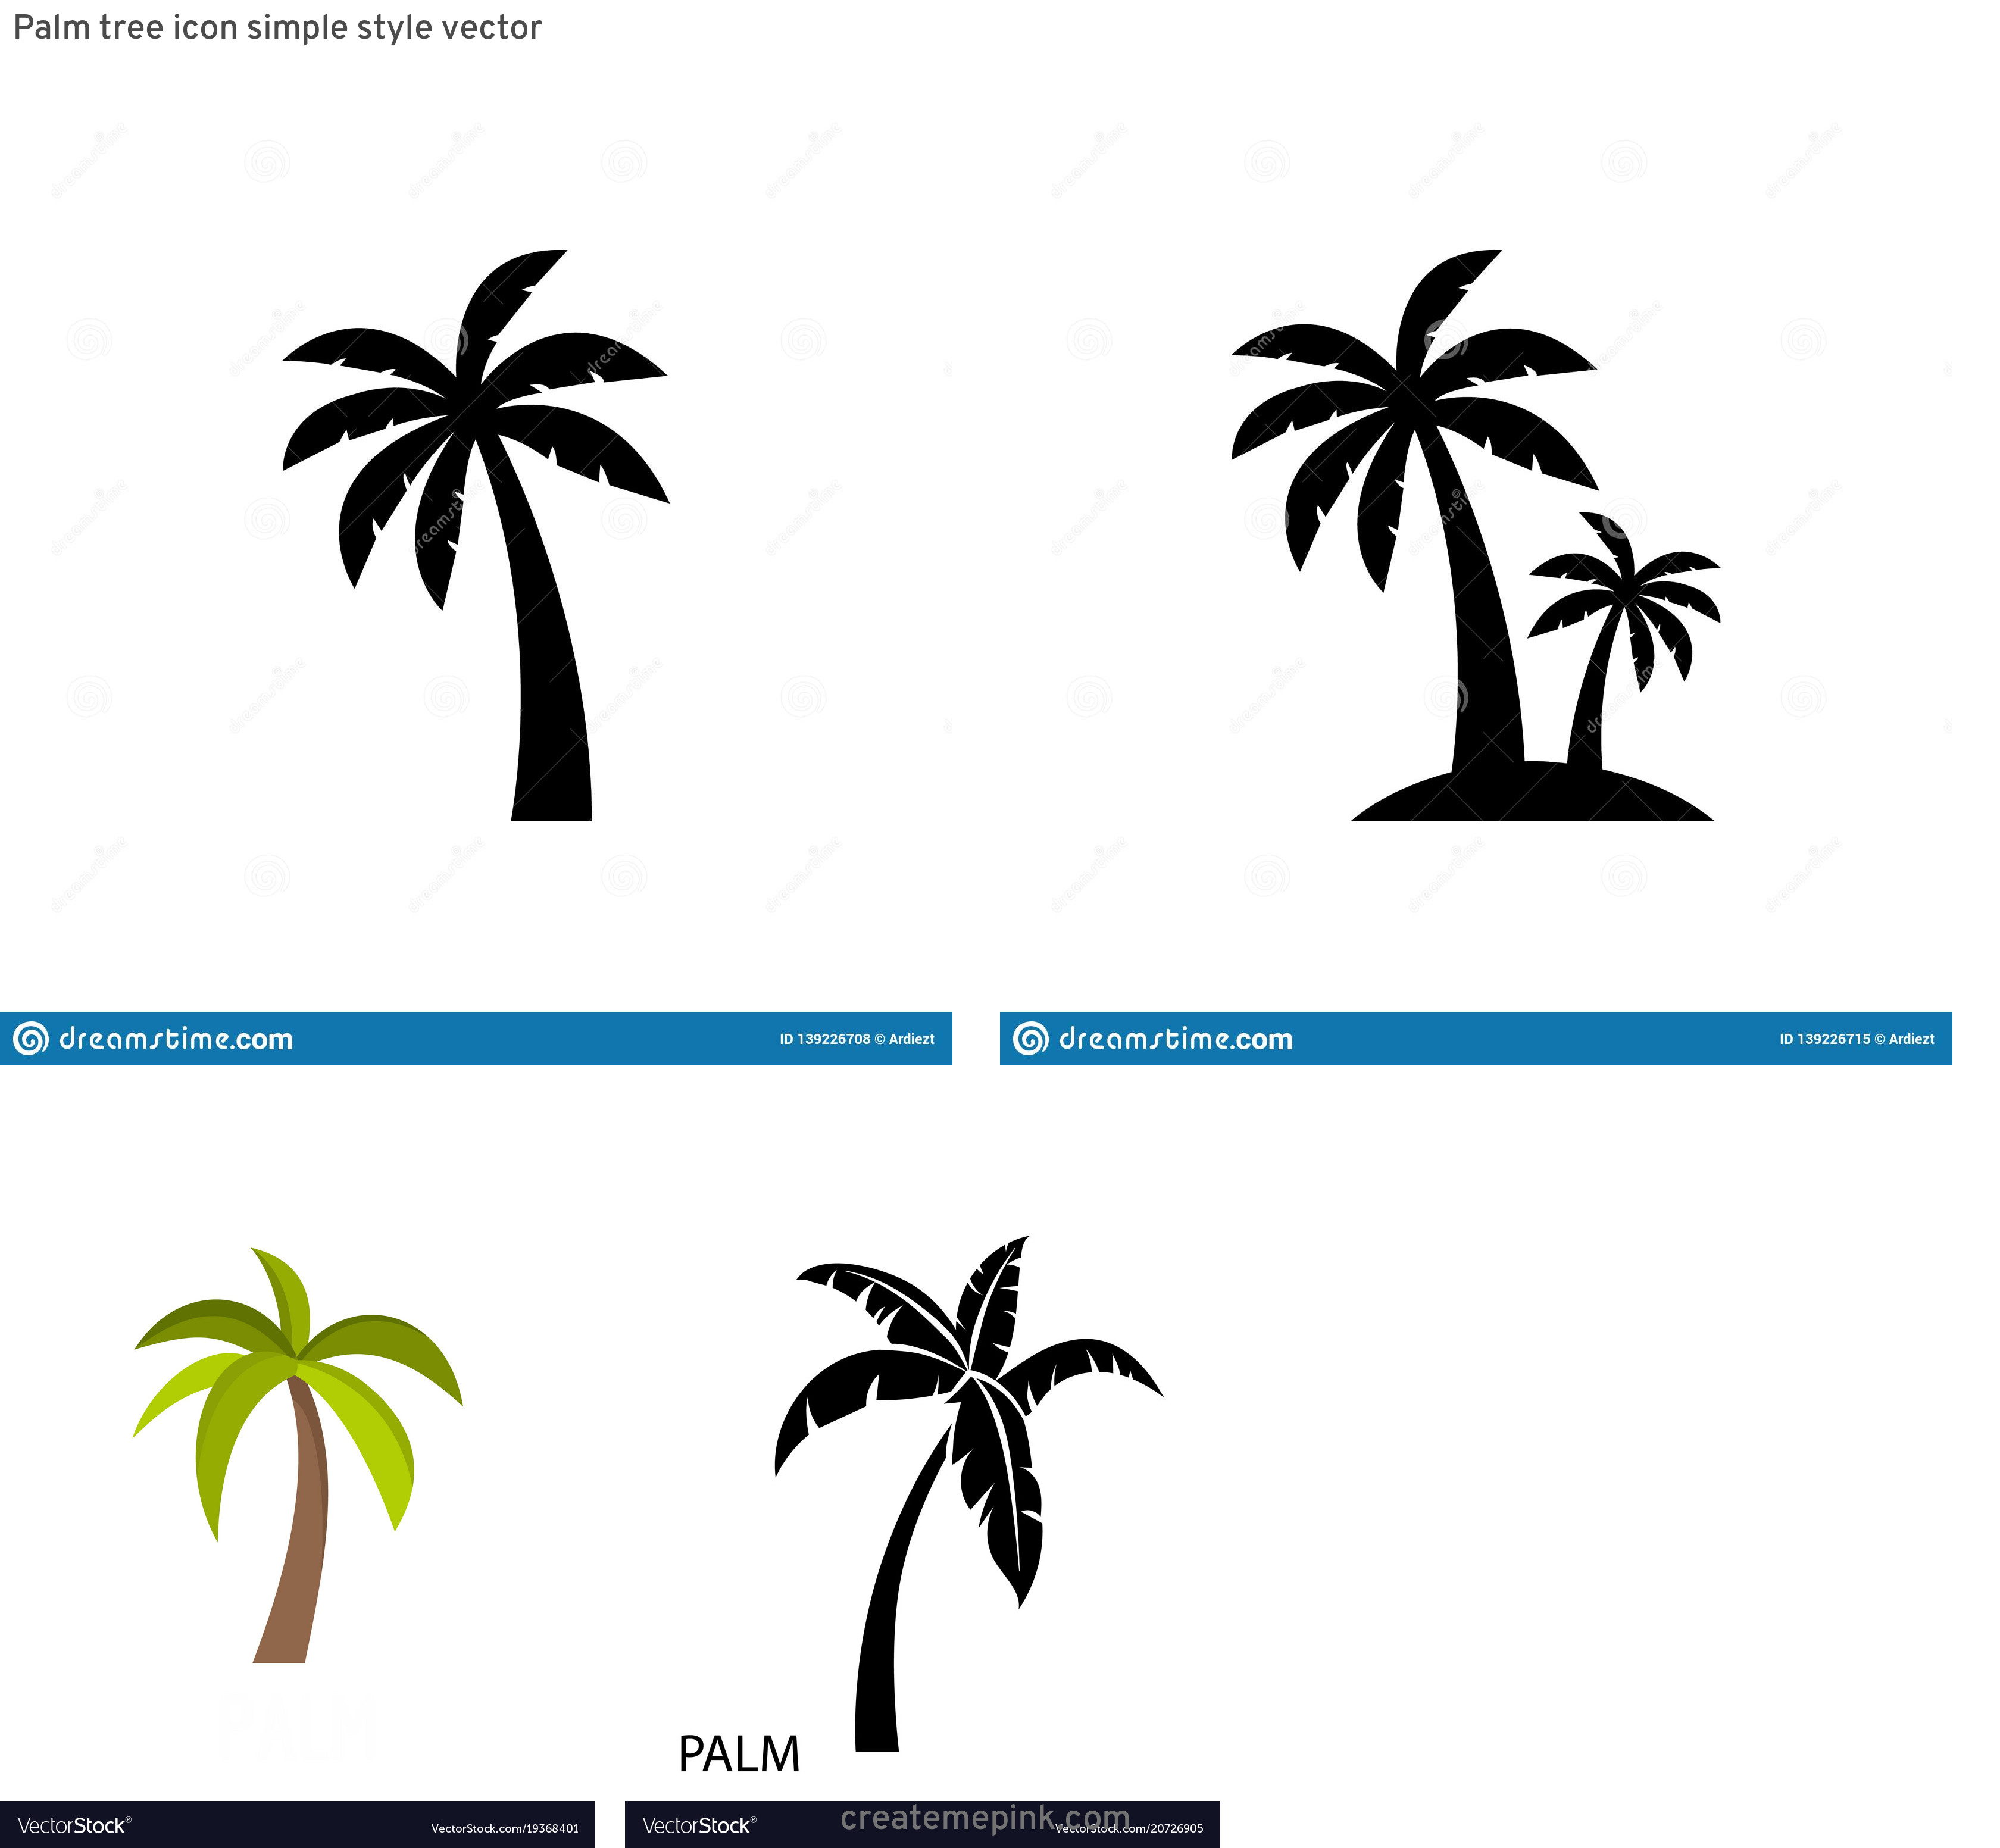 Palm Tree Icon Vector: Palm Tree Icon Simple Style Vector